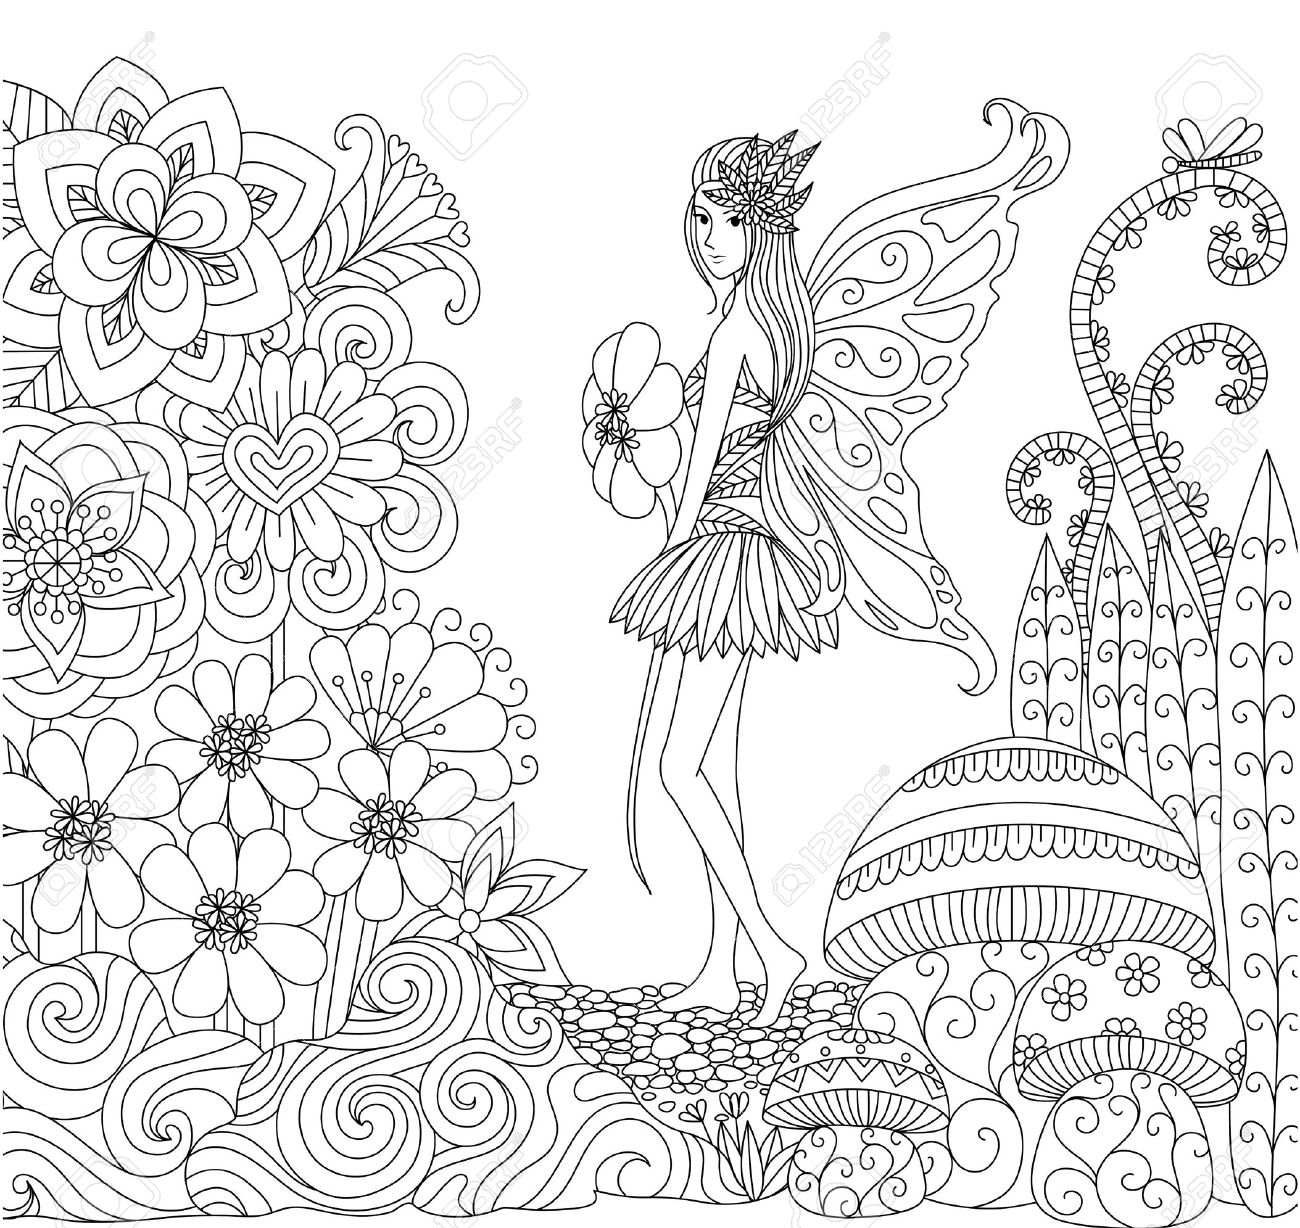 hand drawn fairy walking in flower land for coloring book for